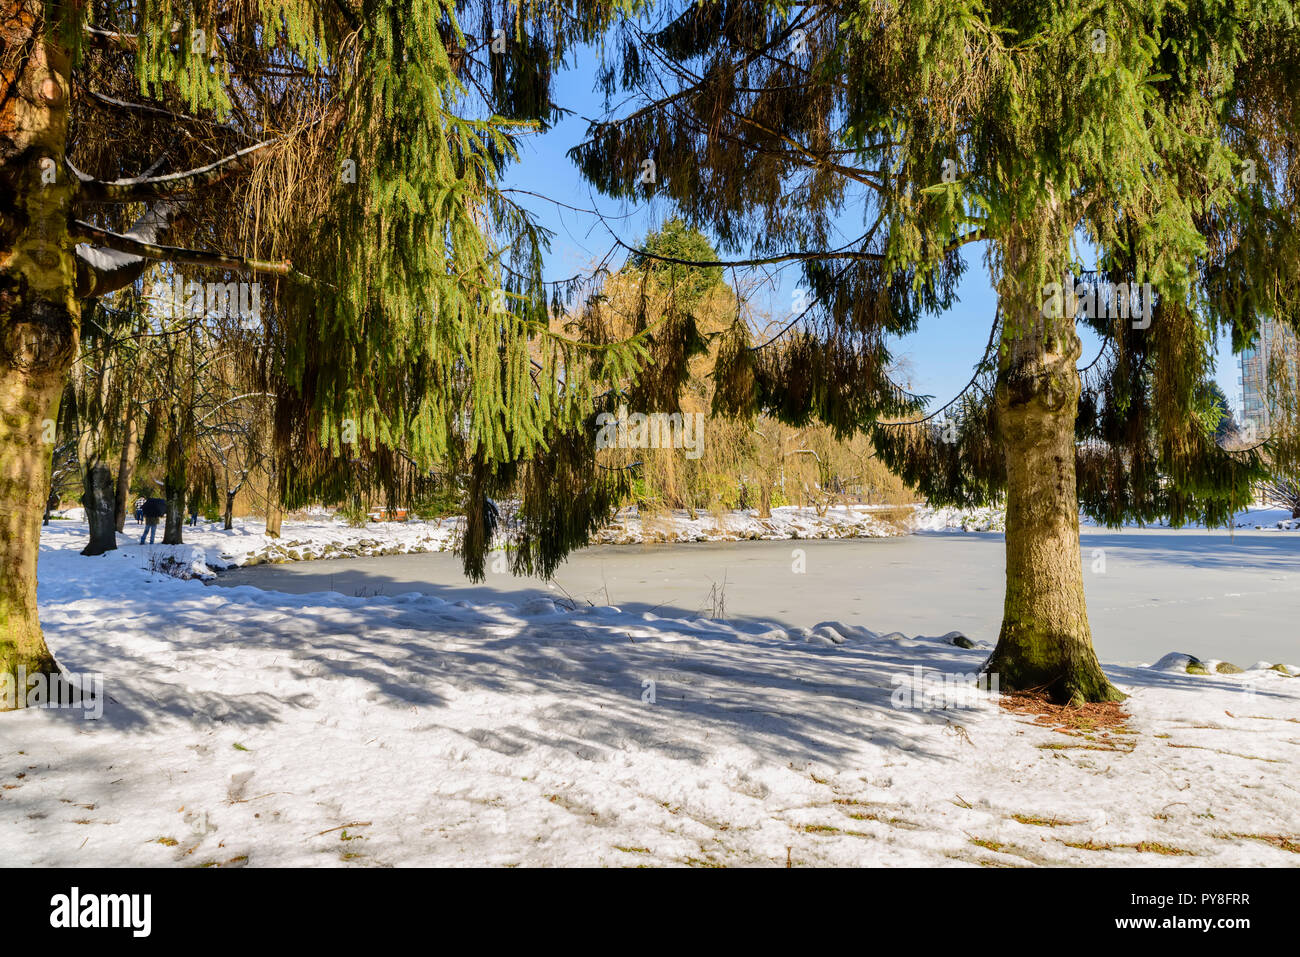 sunny winter day in a snow-covered city park with a lake of bound ice, green trees, people and a building, a blue sky not in the background Stock Photo